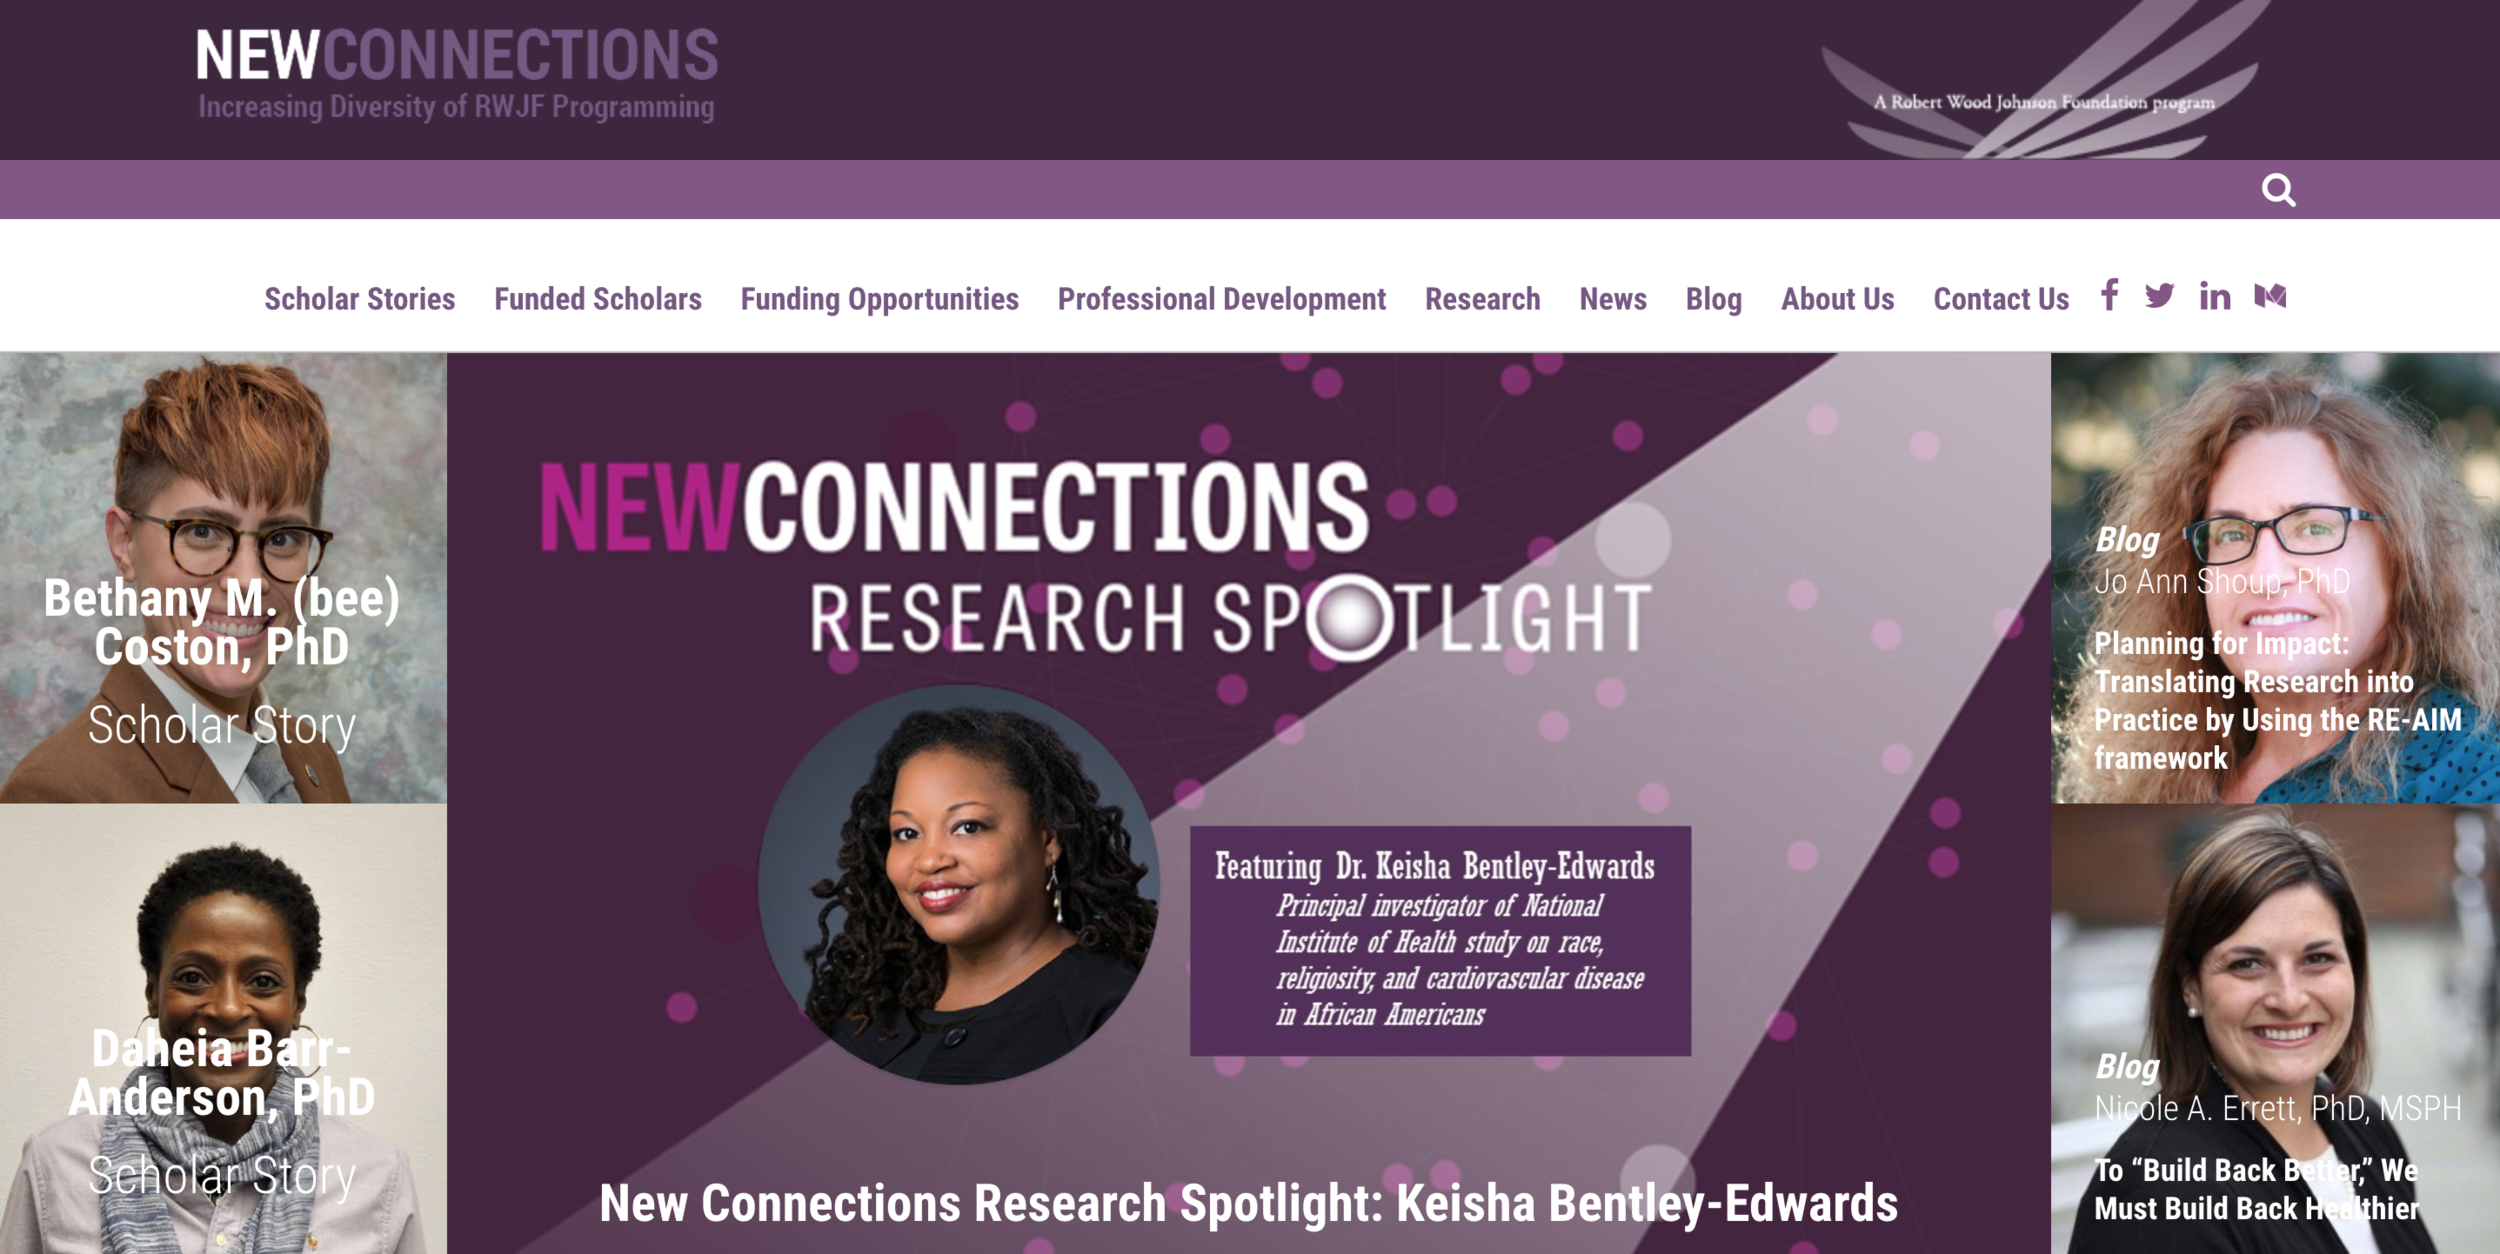 Robert Wood Johnson Foundation New Connections Research Spotlight - For more on my scholar story, click the image to the left.